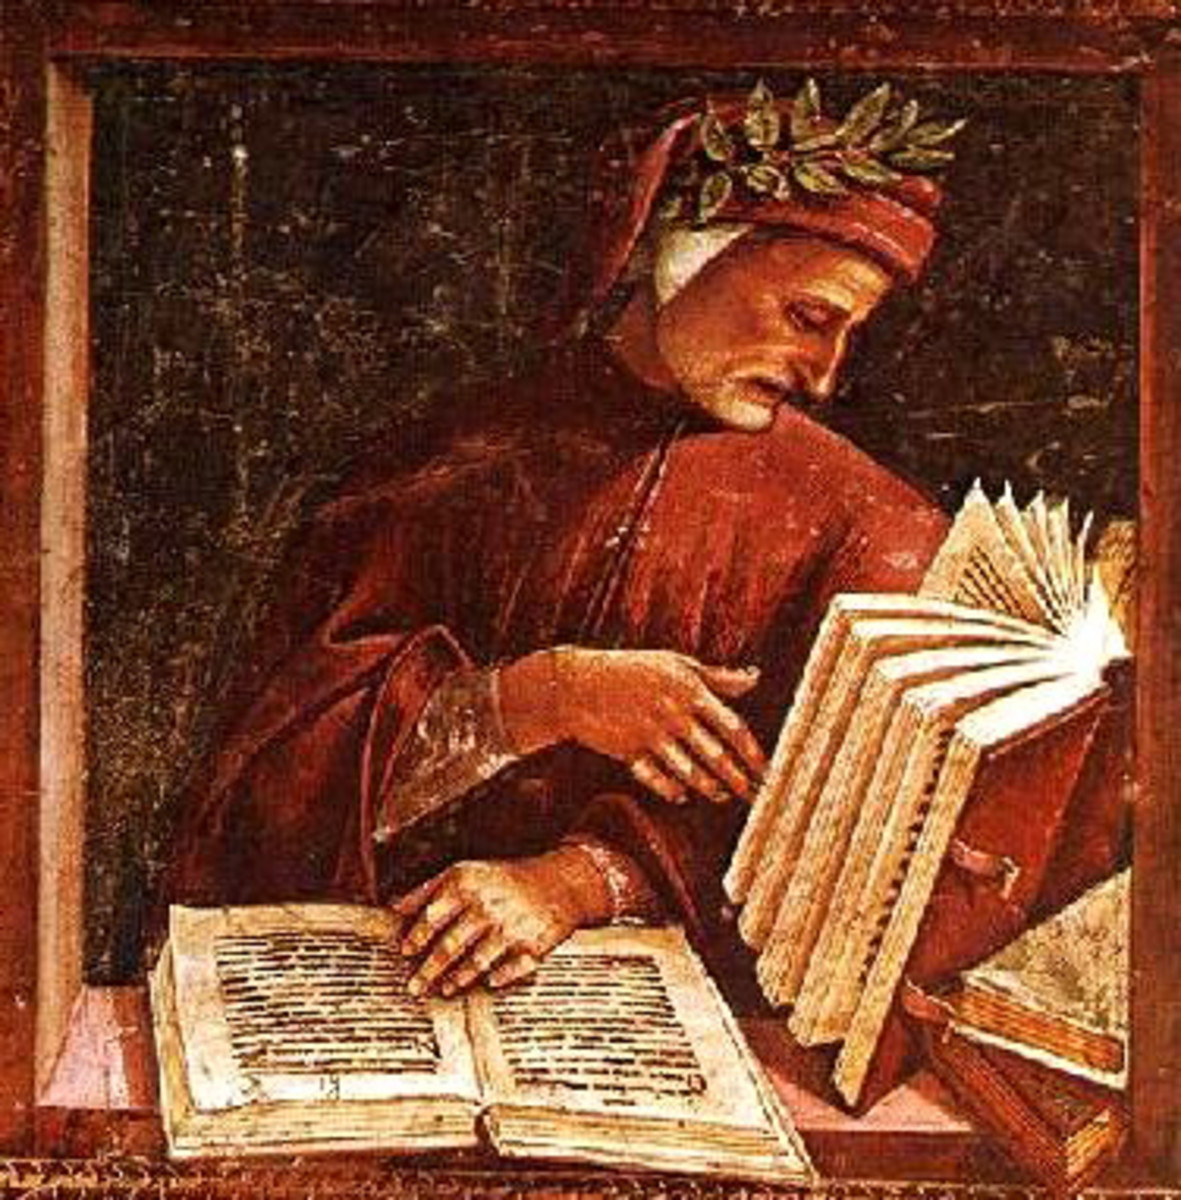 a biography of dante alighieri and influential poet in early literature Dante alighieri florenz 1265 - ravenna 1321 dante alighieri was born in  florence in 1265 dante is definitely one of the most important italian poets and  one.